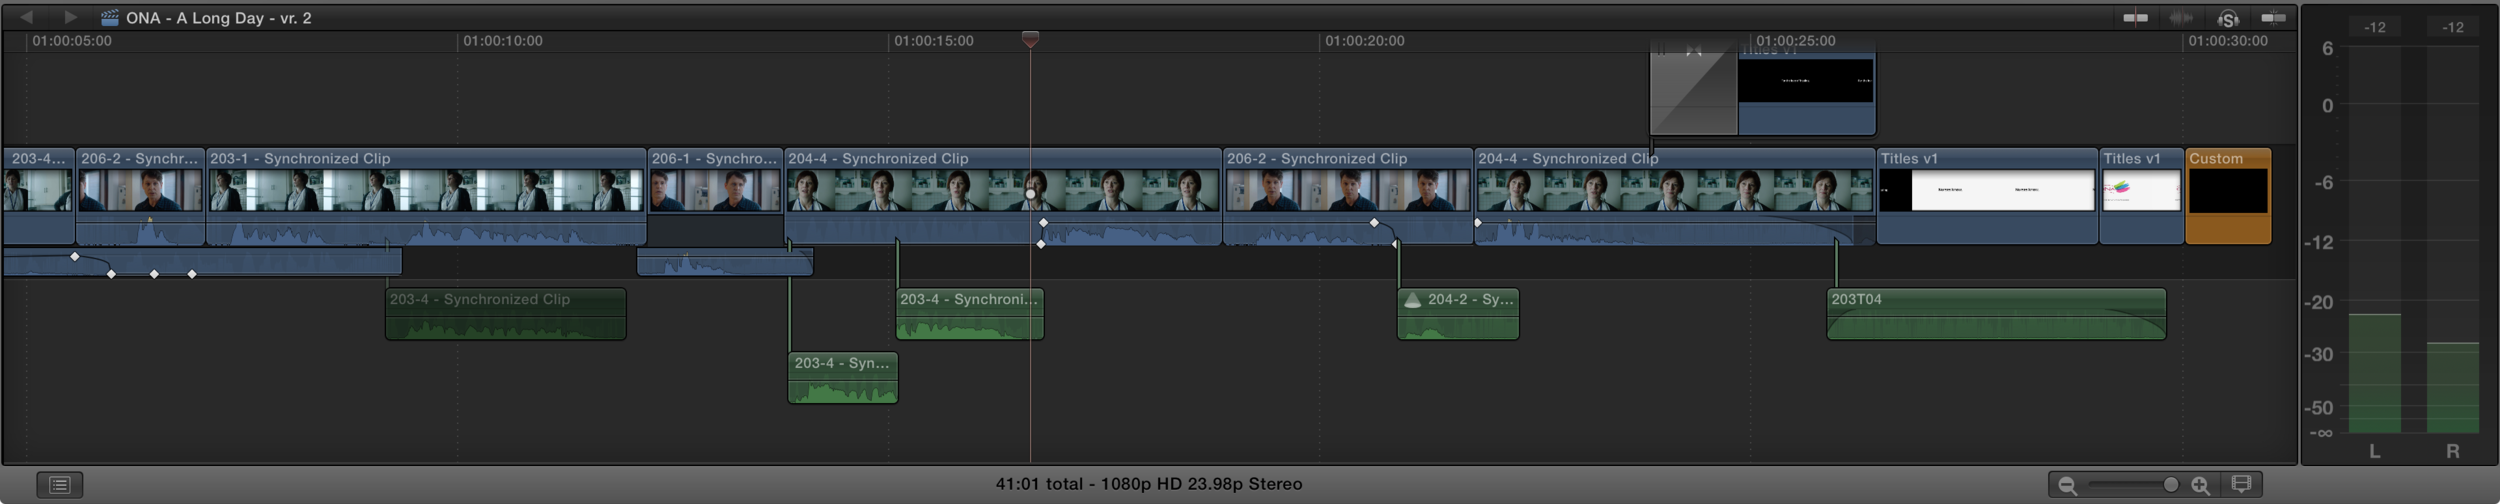 """Pulling a Fincher"": editing together multiple takes for the perfect performance"